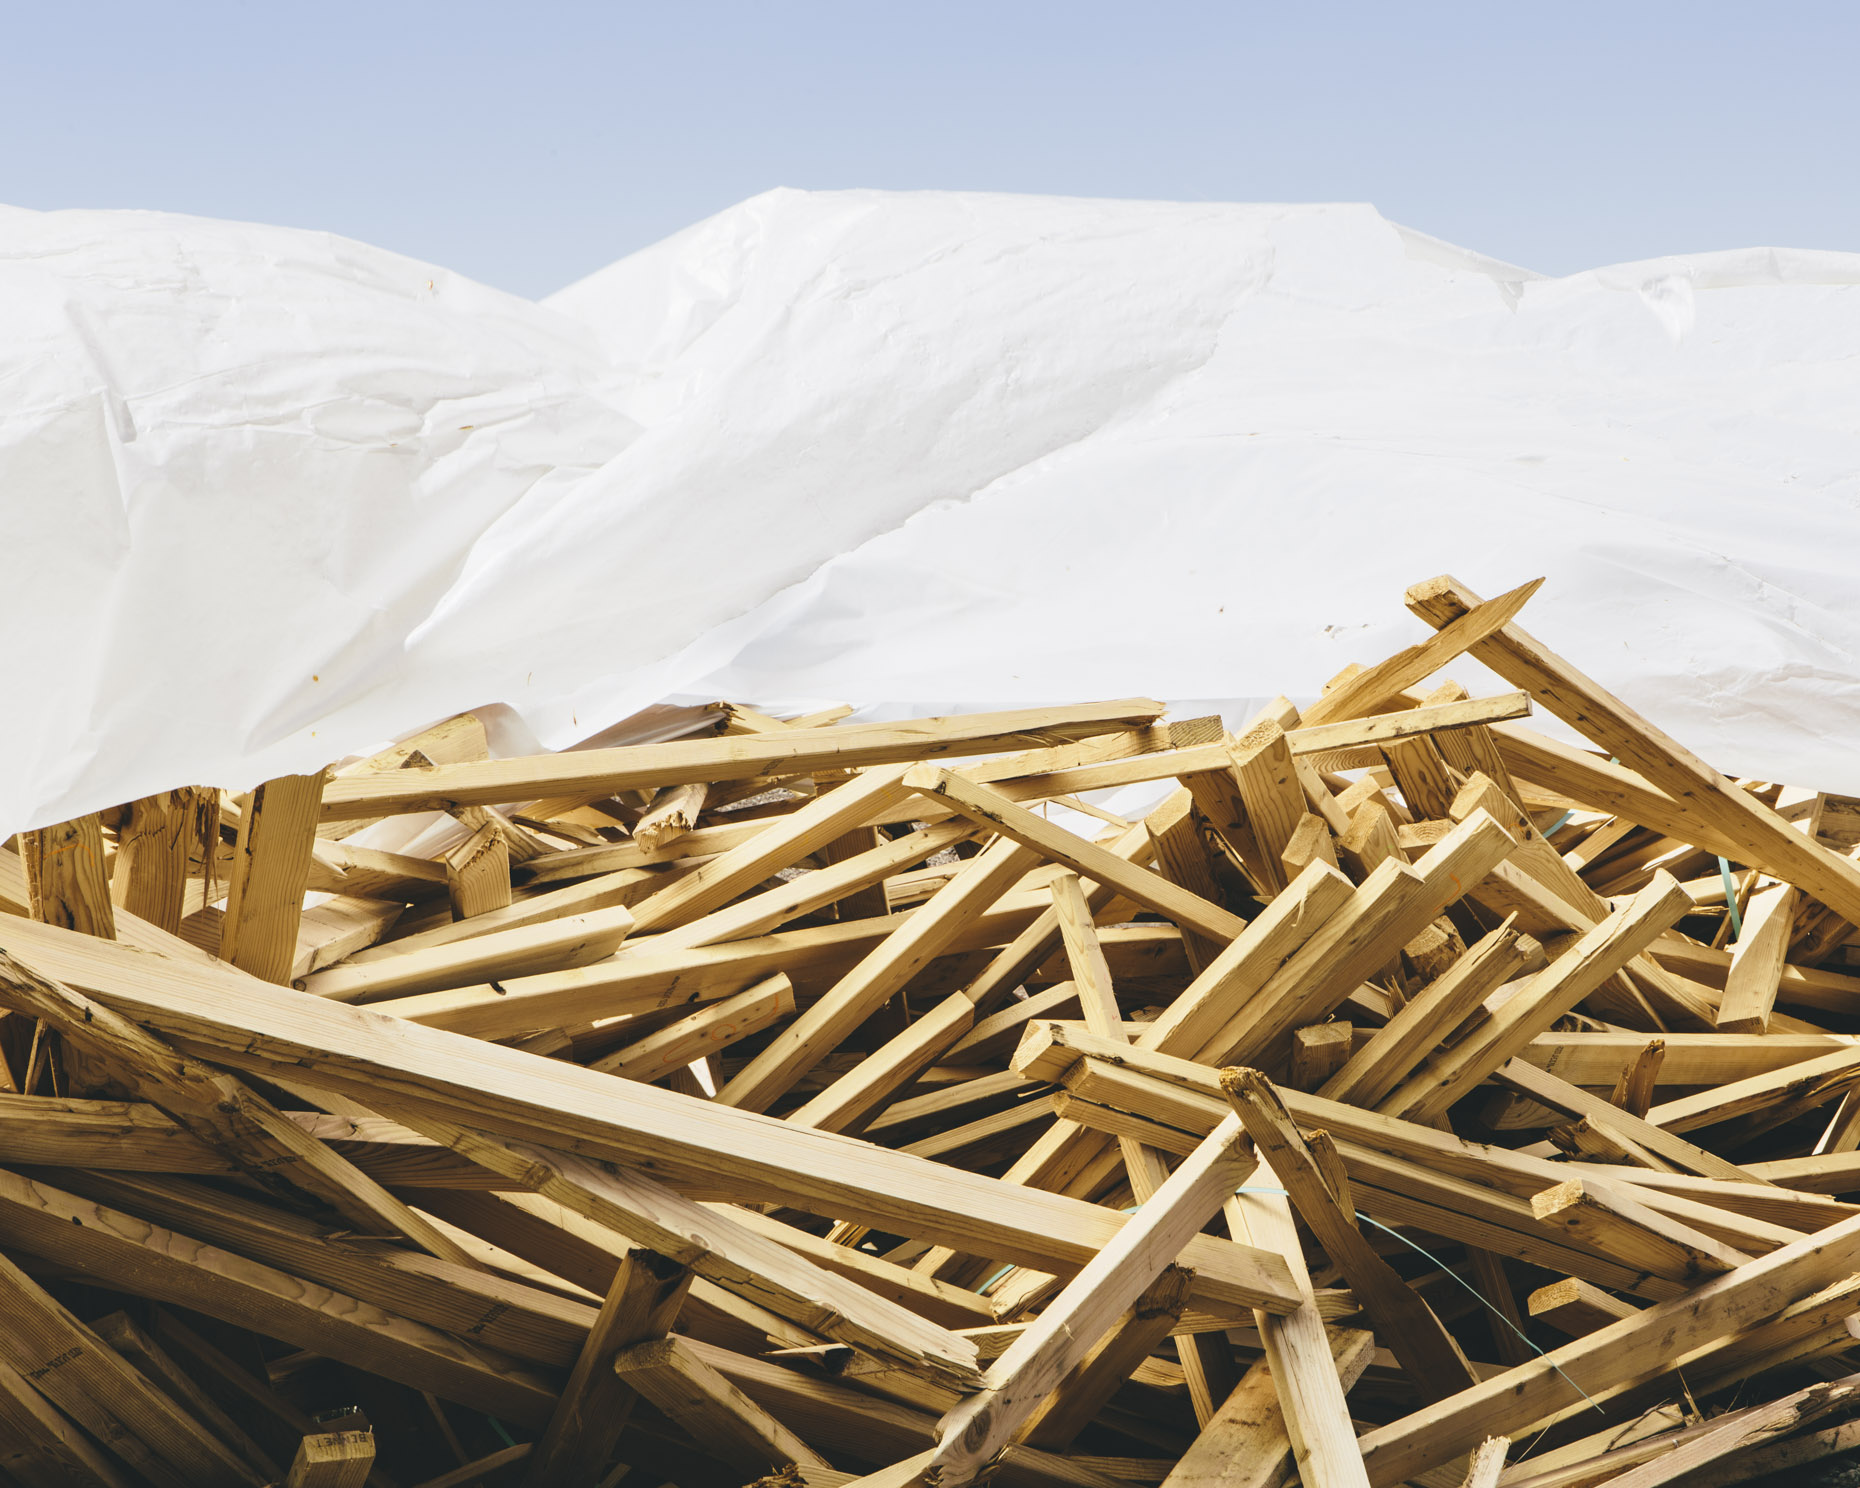 Discarded lumber pile, Palouse, WA - Paul Edmondson